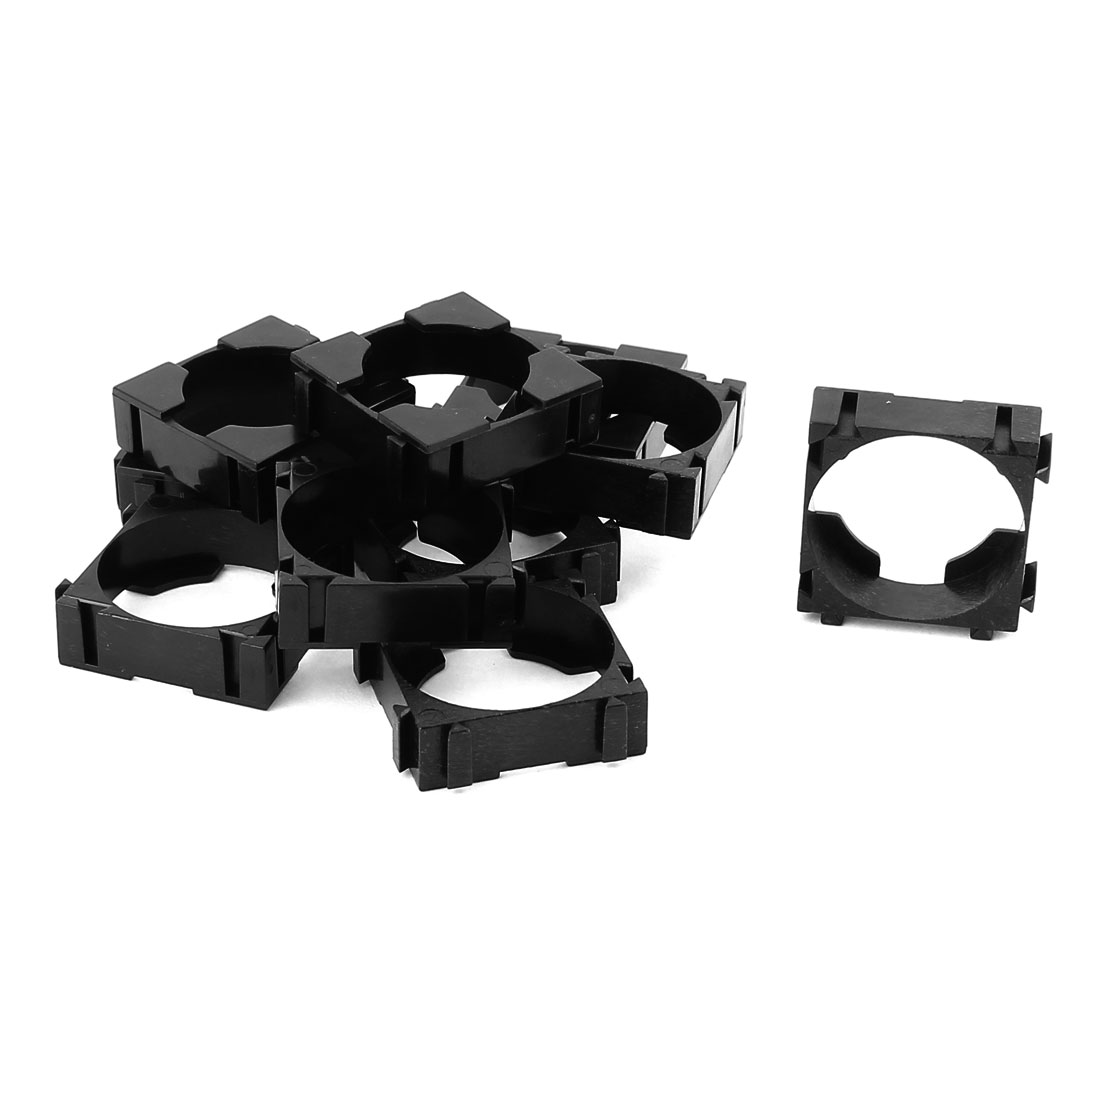 10 Pcs 26650 Lithium Ion Cell Battery Holder Bracket for DIY Battery Pack